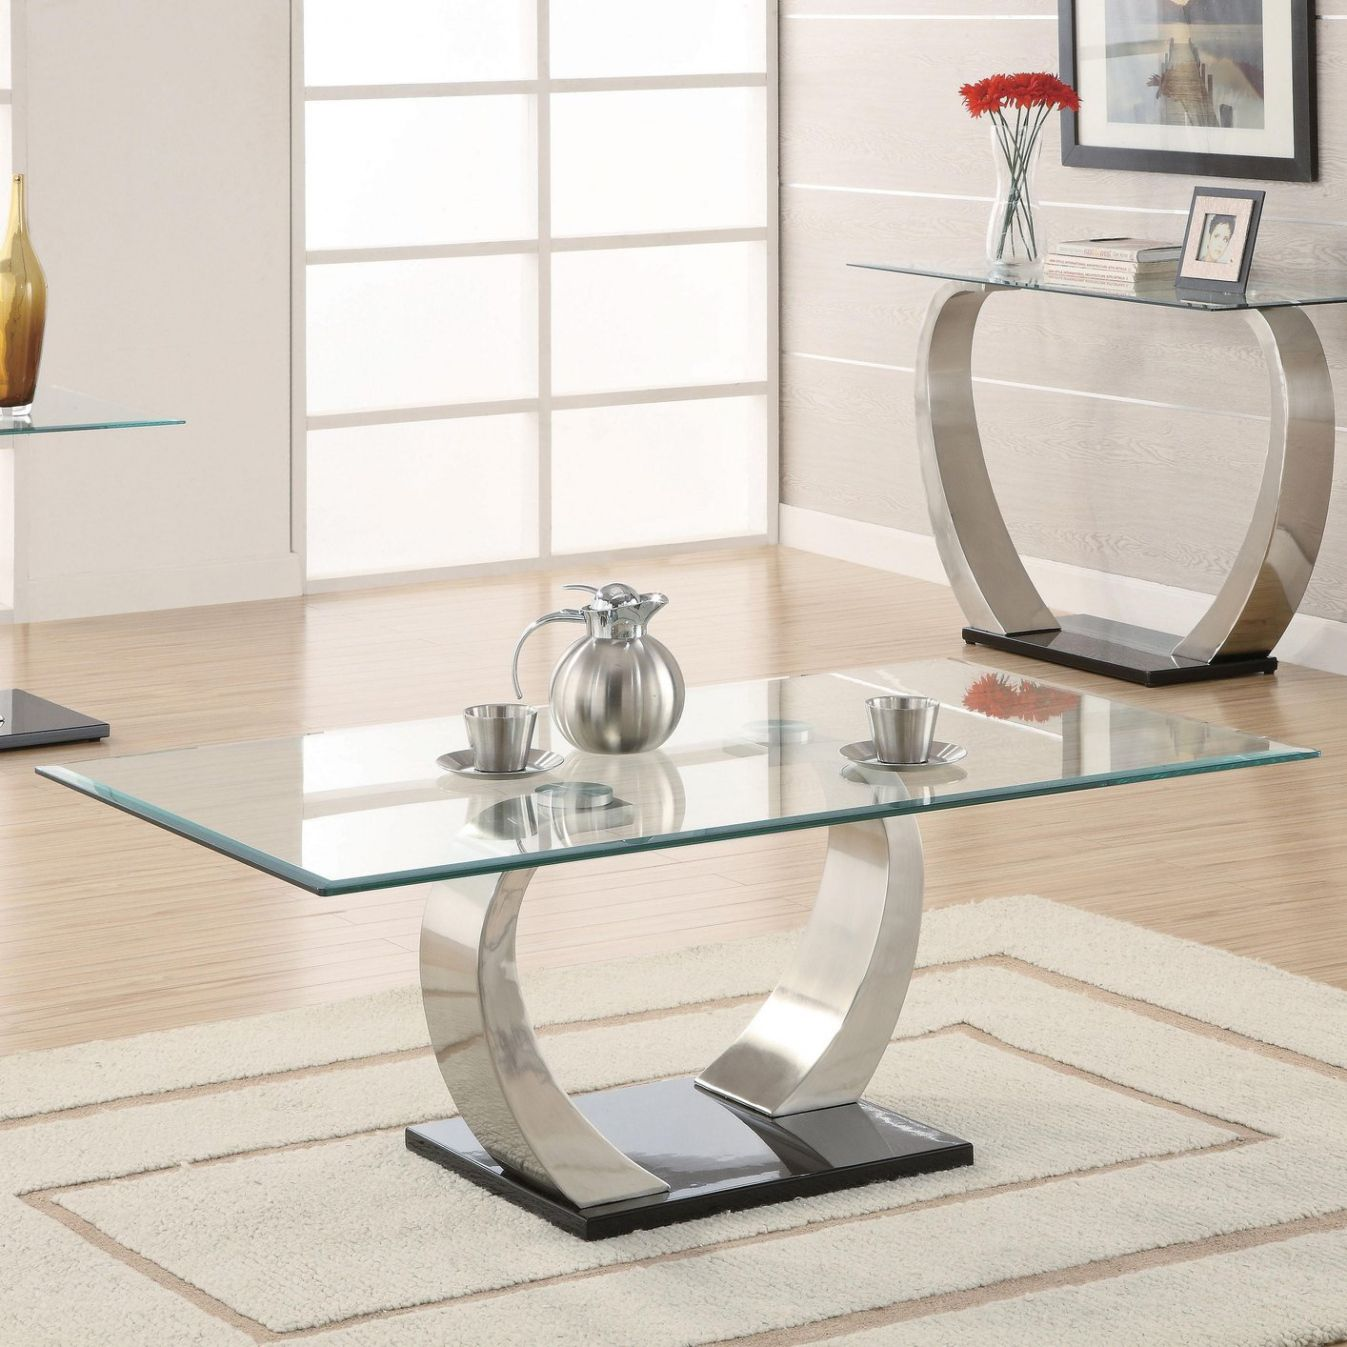 Silver Glass Coffee Table Modern Used Furniture Check More At Http Www Nikkitsfun Com Silver Glass Coffee Table Meja Kopi Meja Makan Meja Kaca Living room glass table